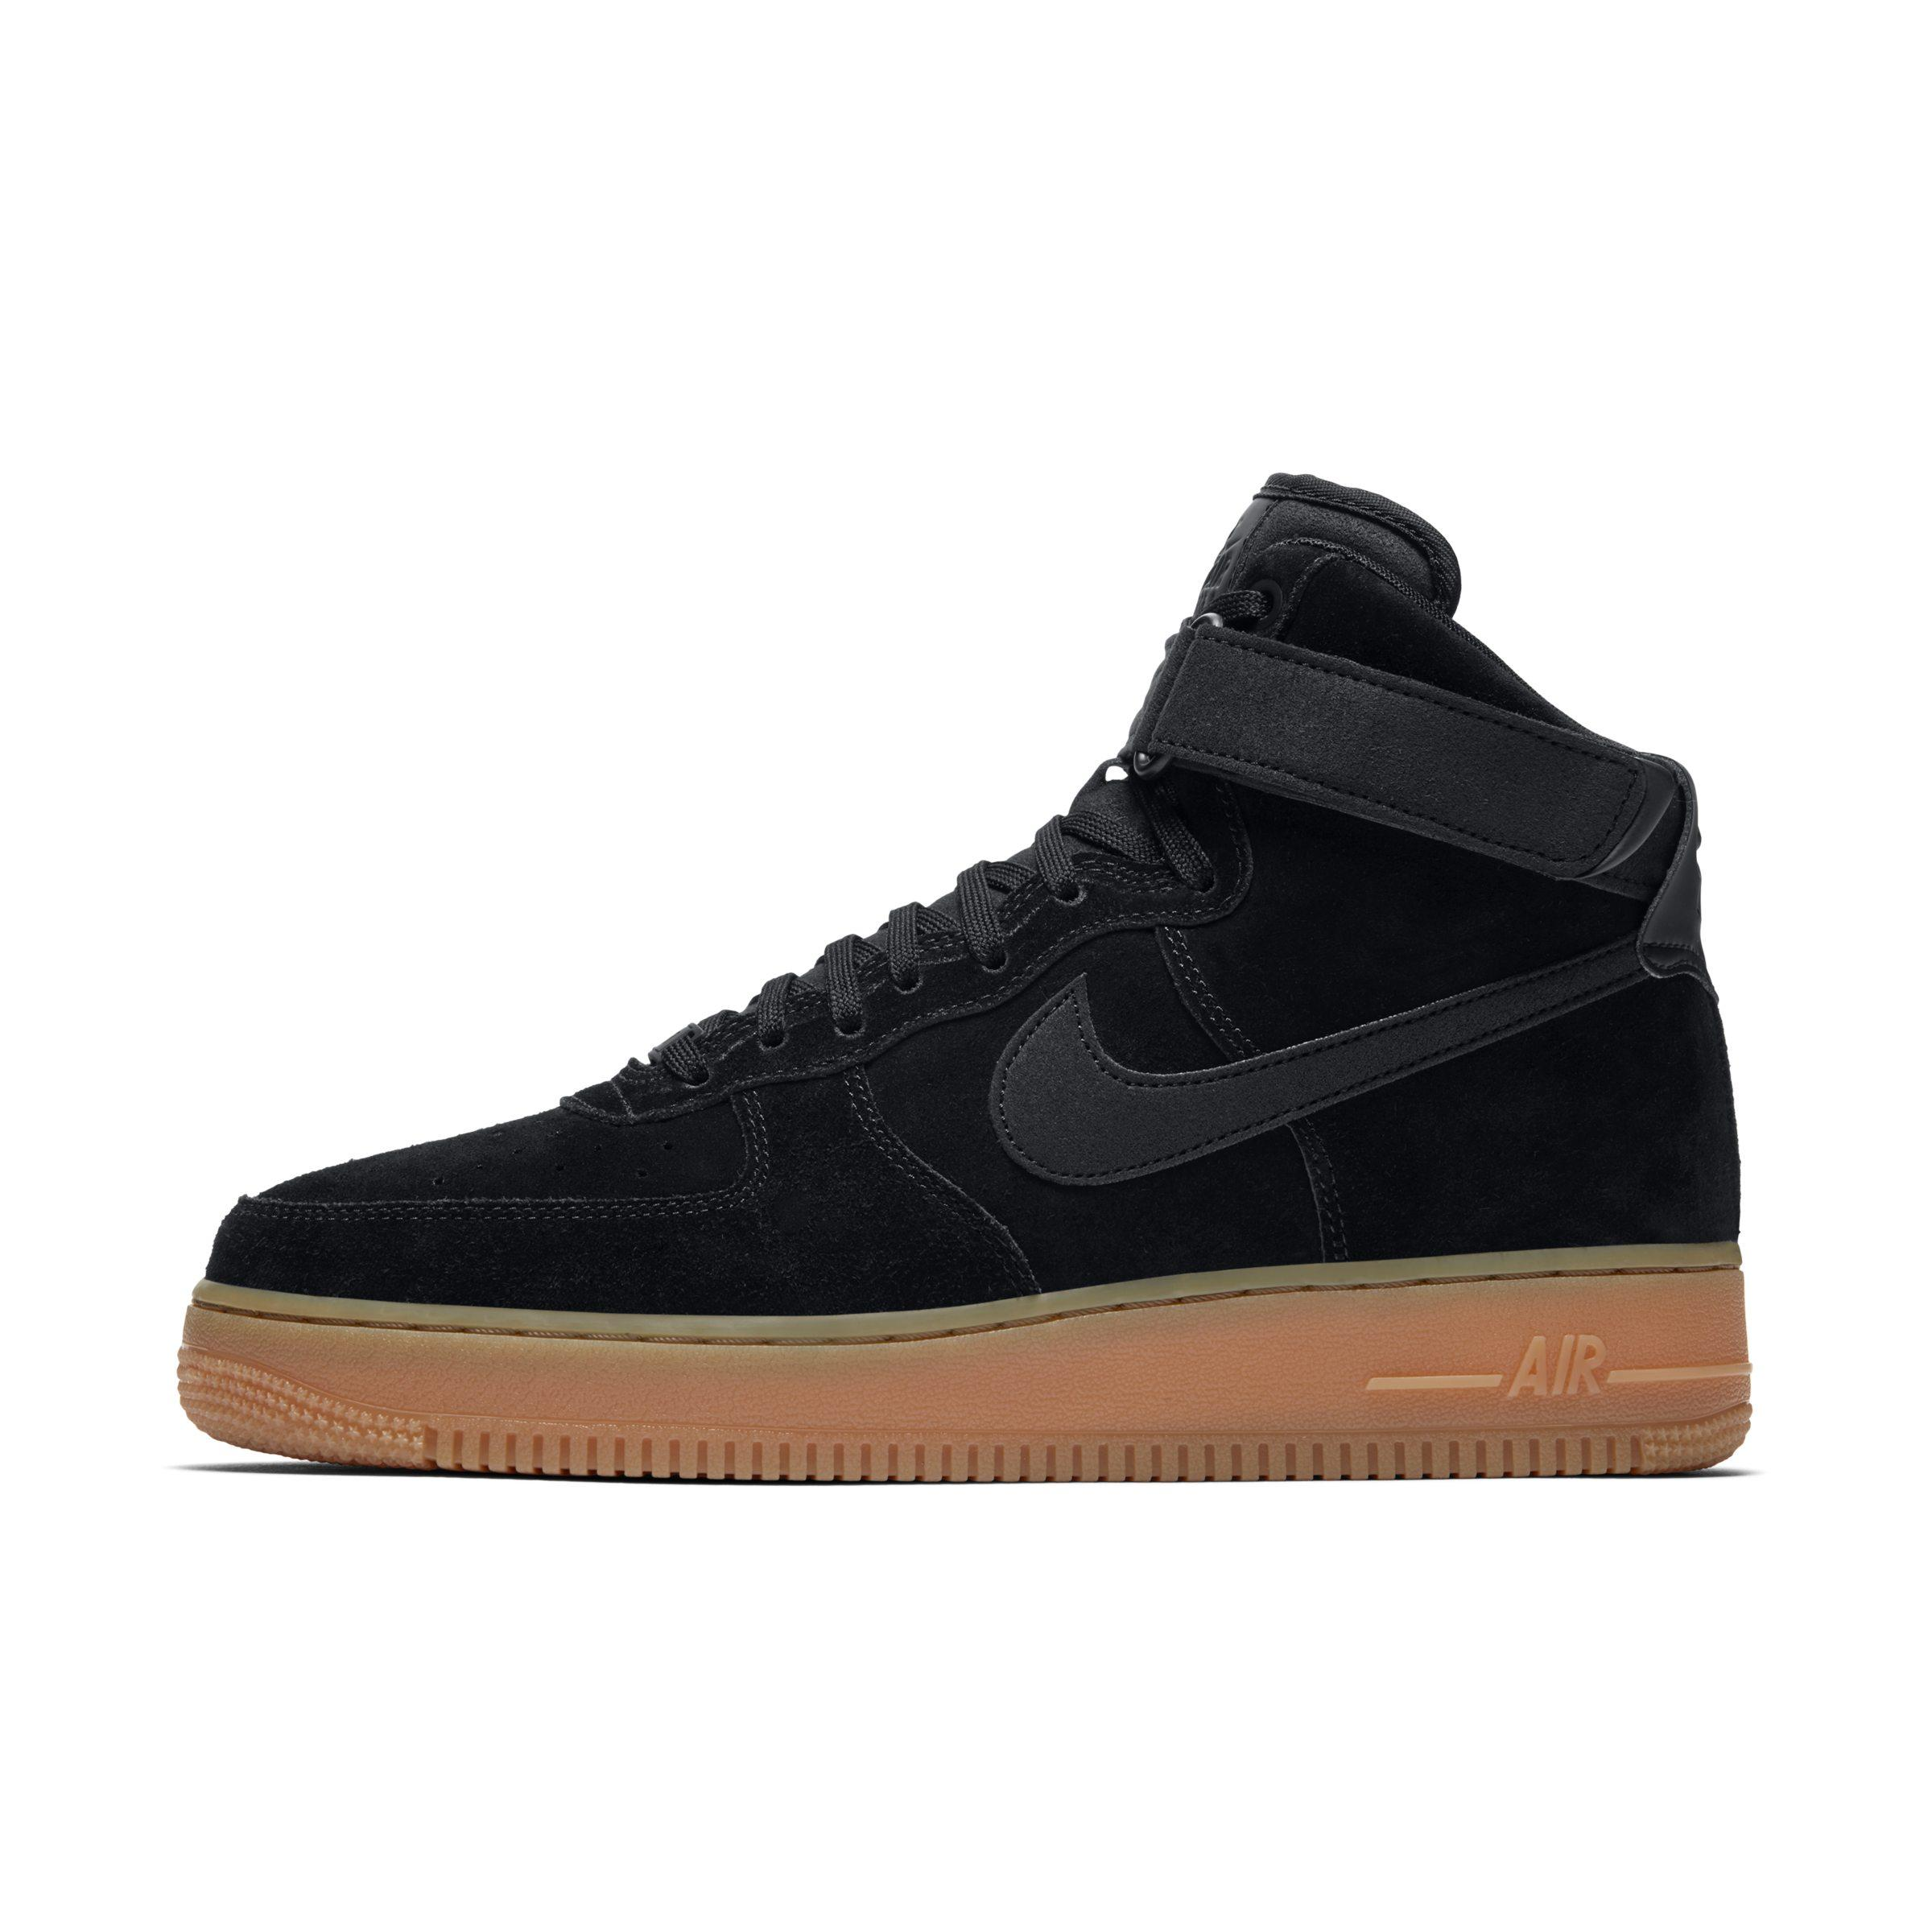 18aeee6a335e Nike Air Force 1 High  07 Lv8 Suede Shoe in Black for Men - Lyst